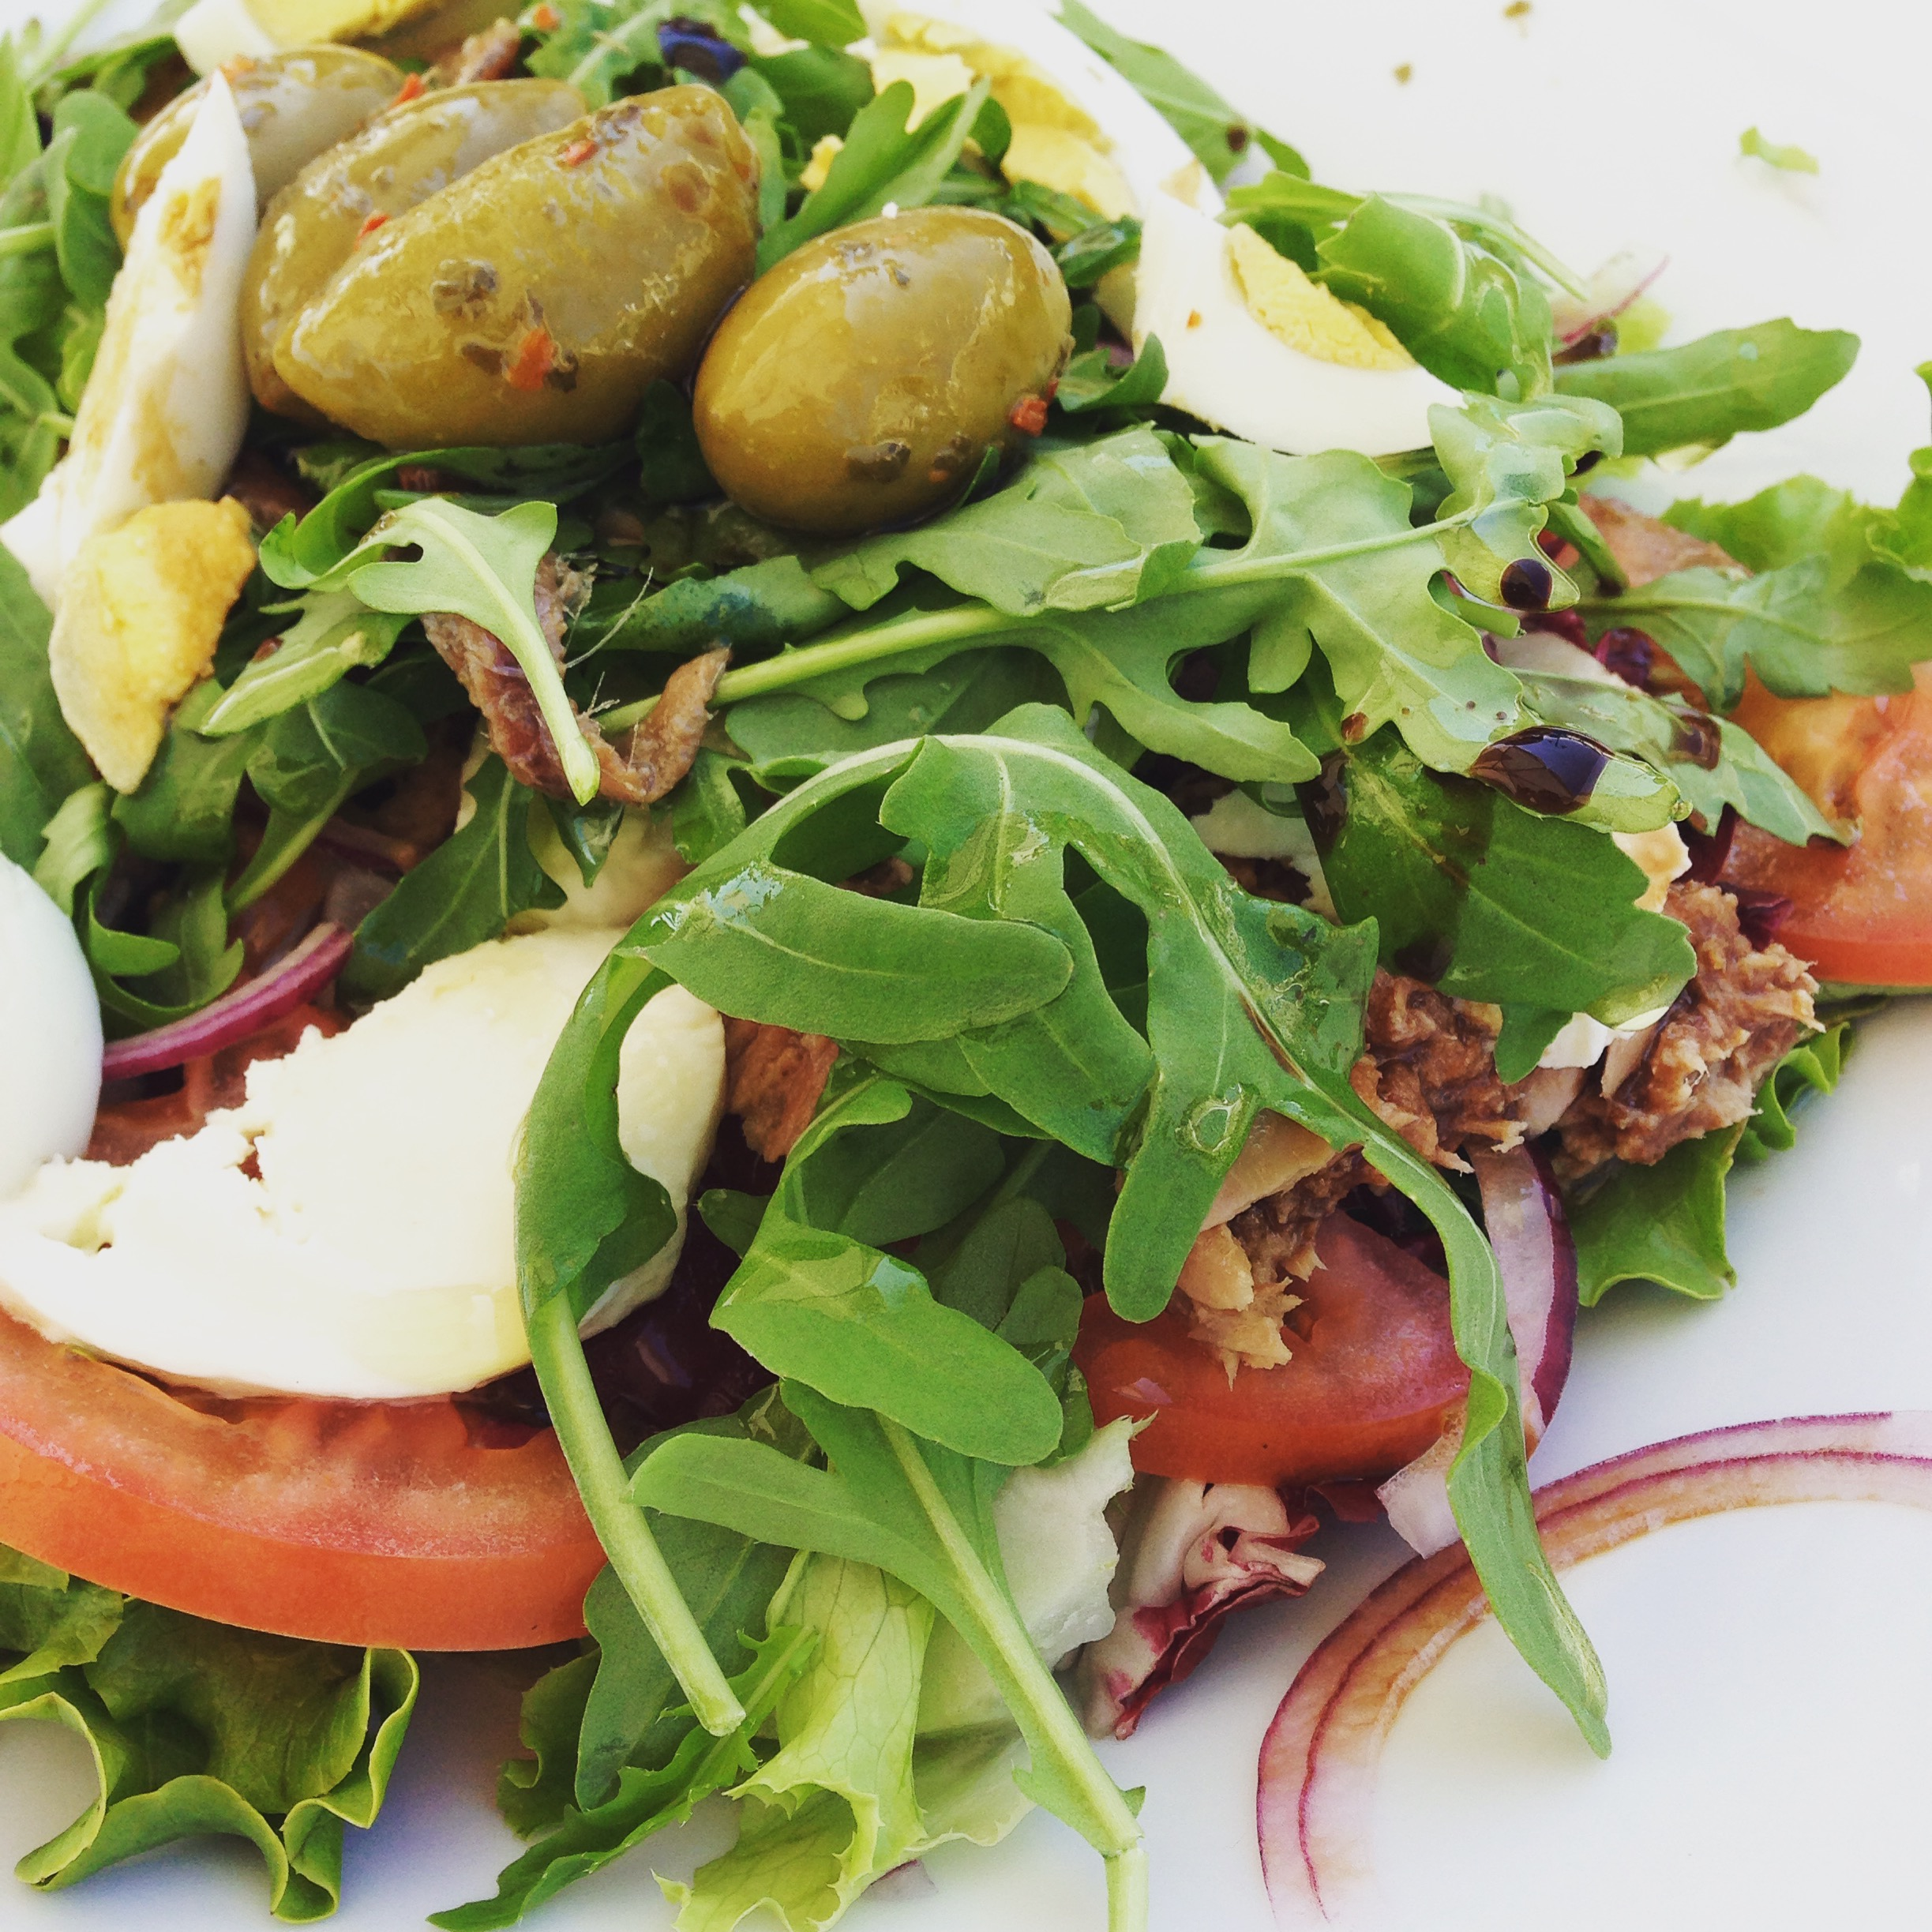 Even the salads are heavy with olives, cheeses, and meats or tuna.